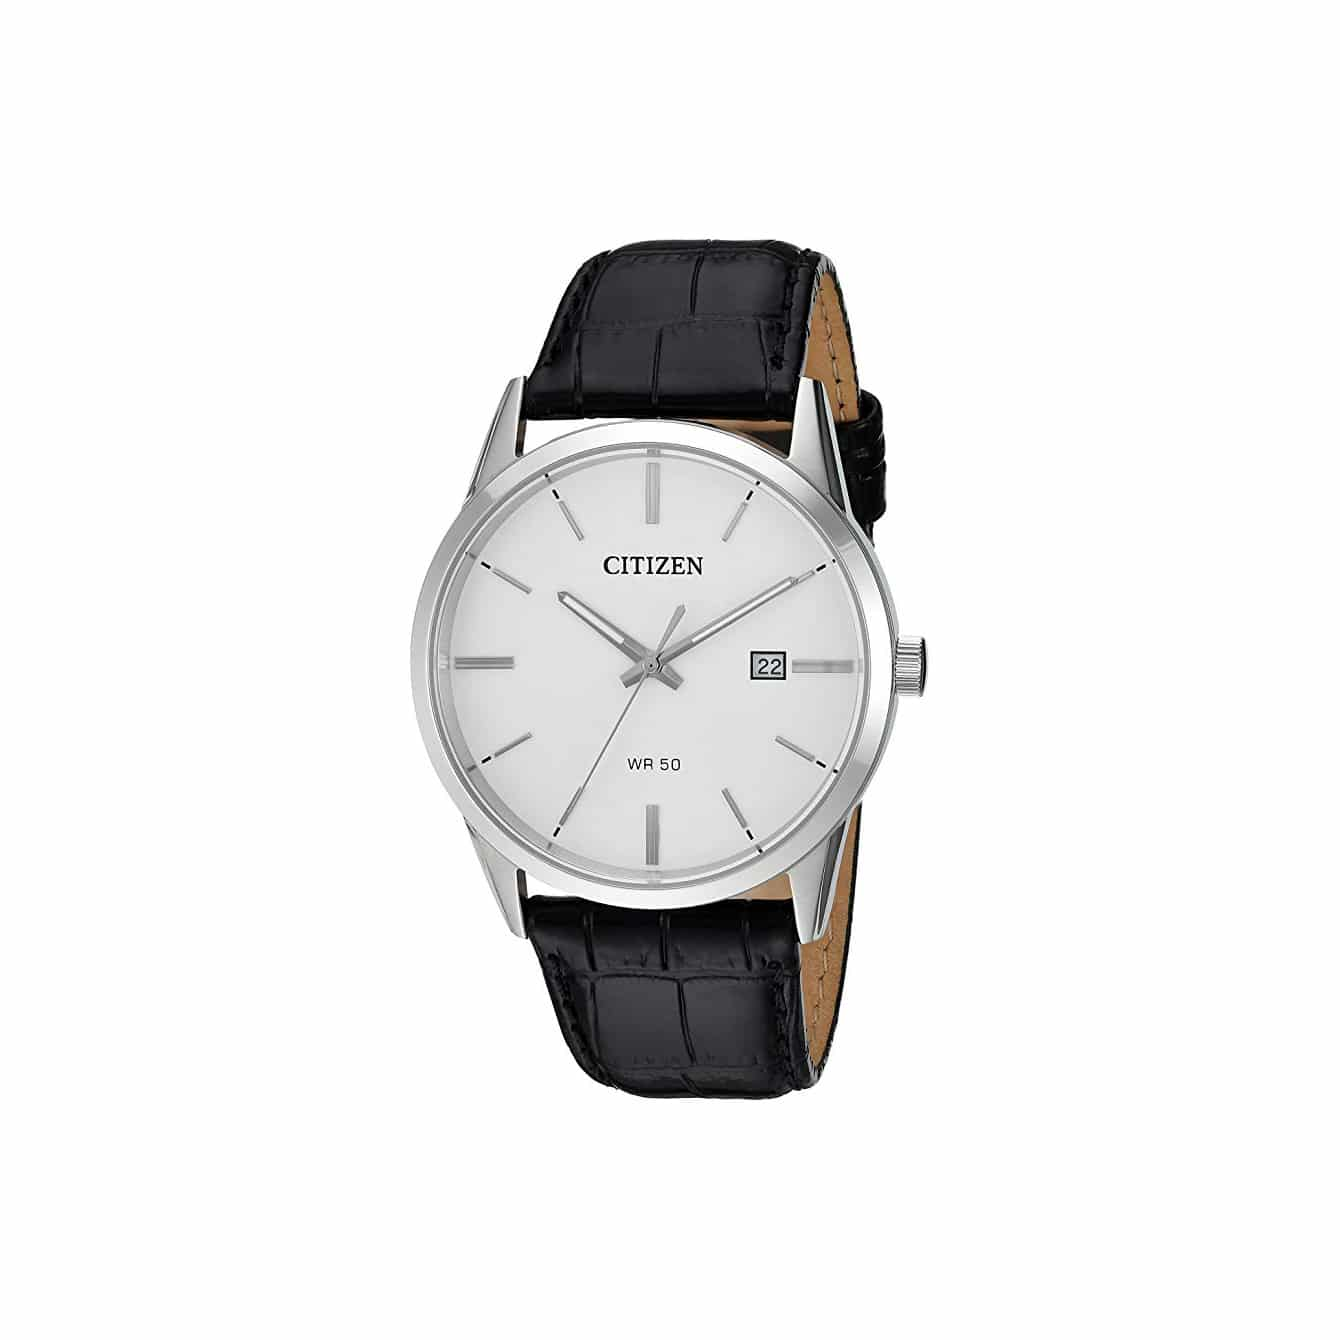 Citizen BI5000 Quartz Dress Watch